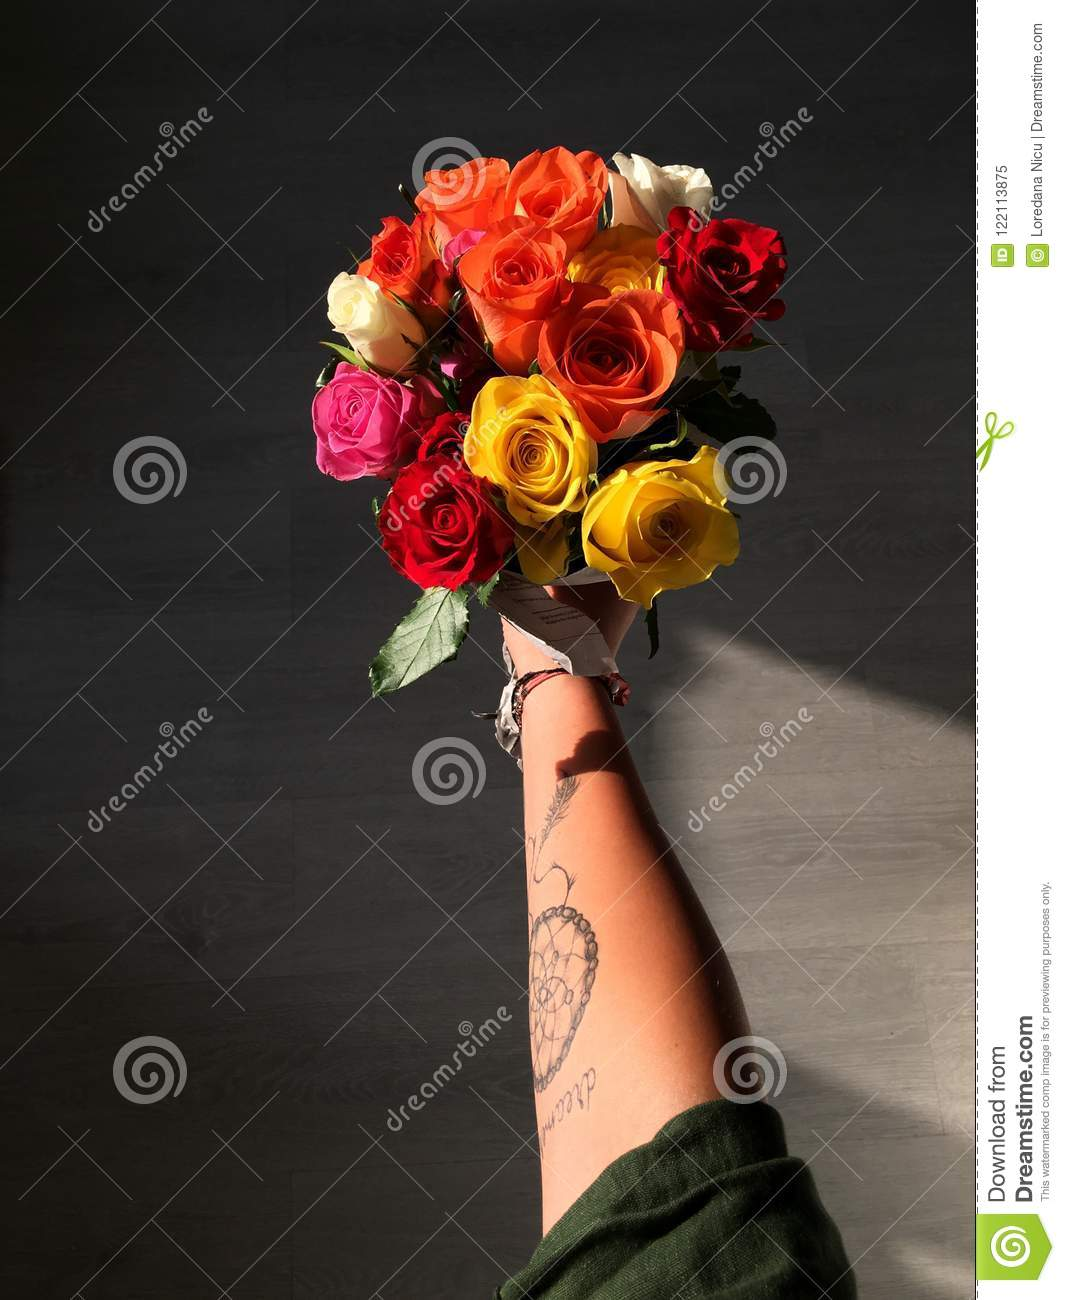 Hand With A Tattoo Holding Flowers Stock Image Image Of Interior Indoor 122113875